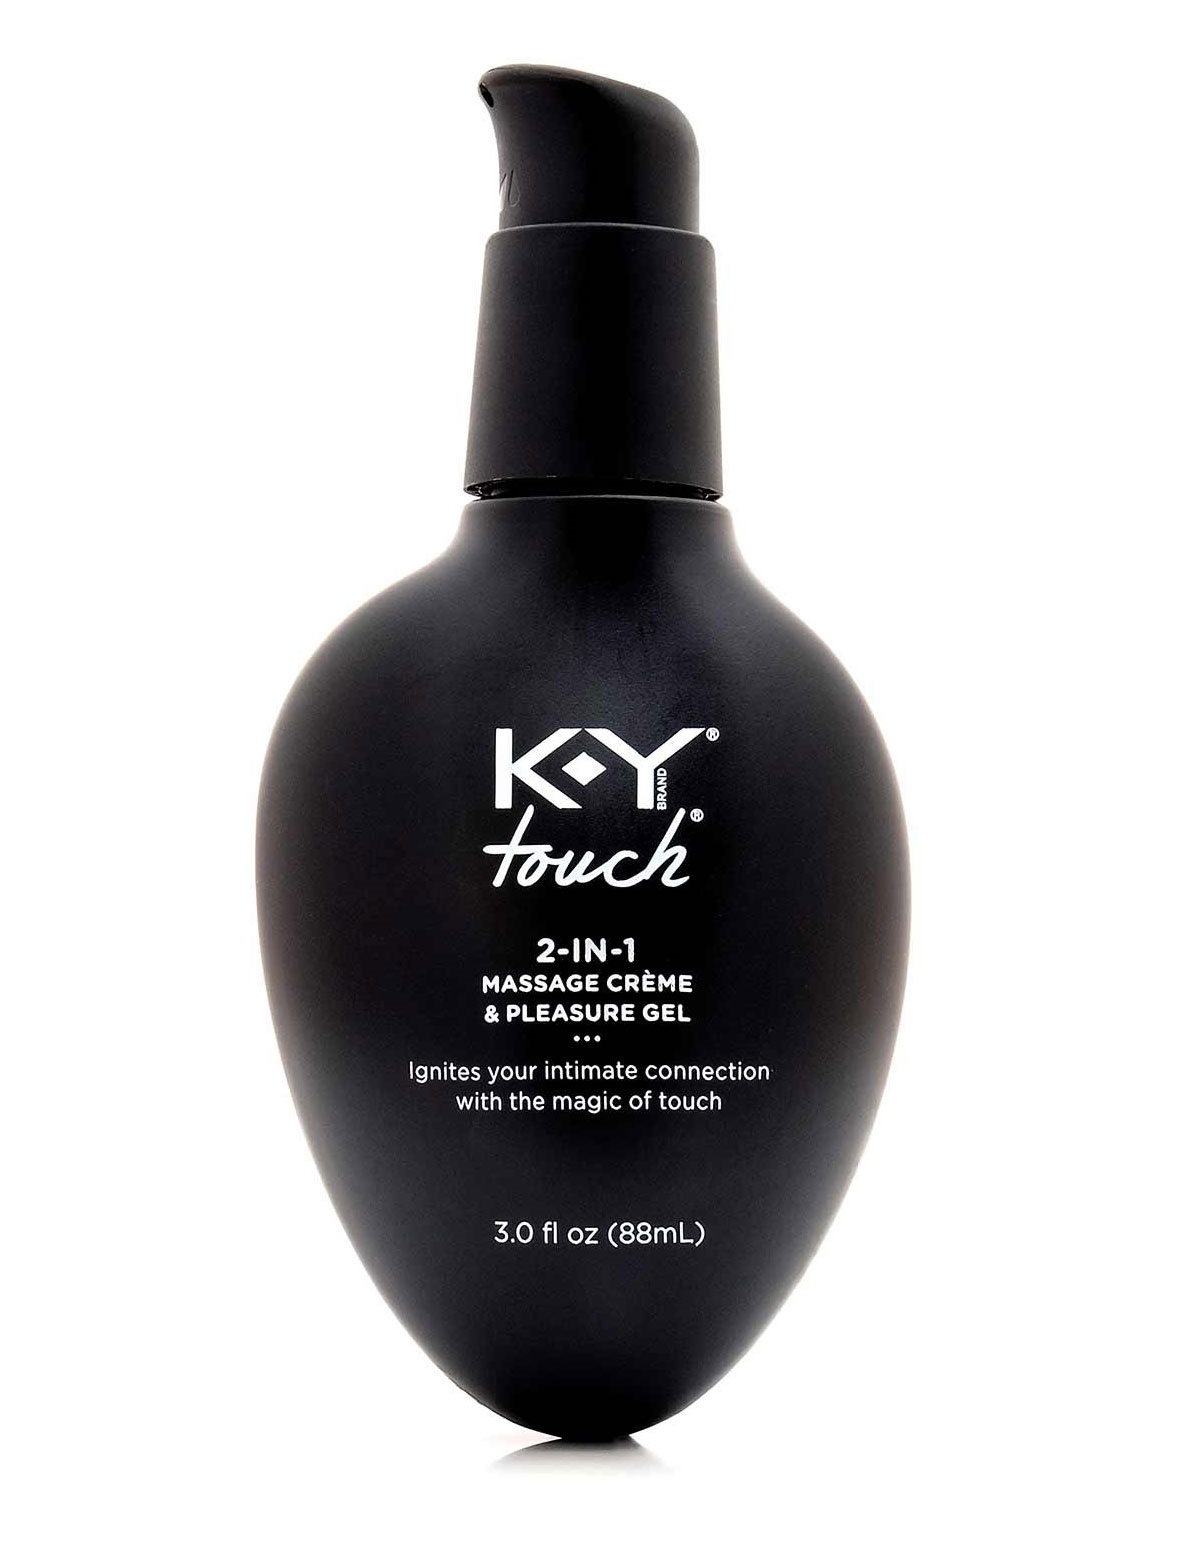 Ky Touch 2-In-1 Massage Creme & Pleasure Gel